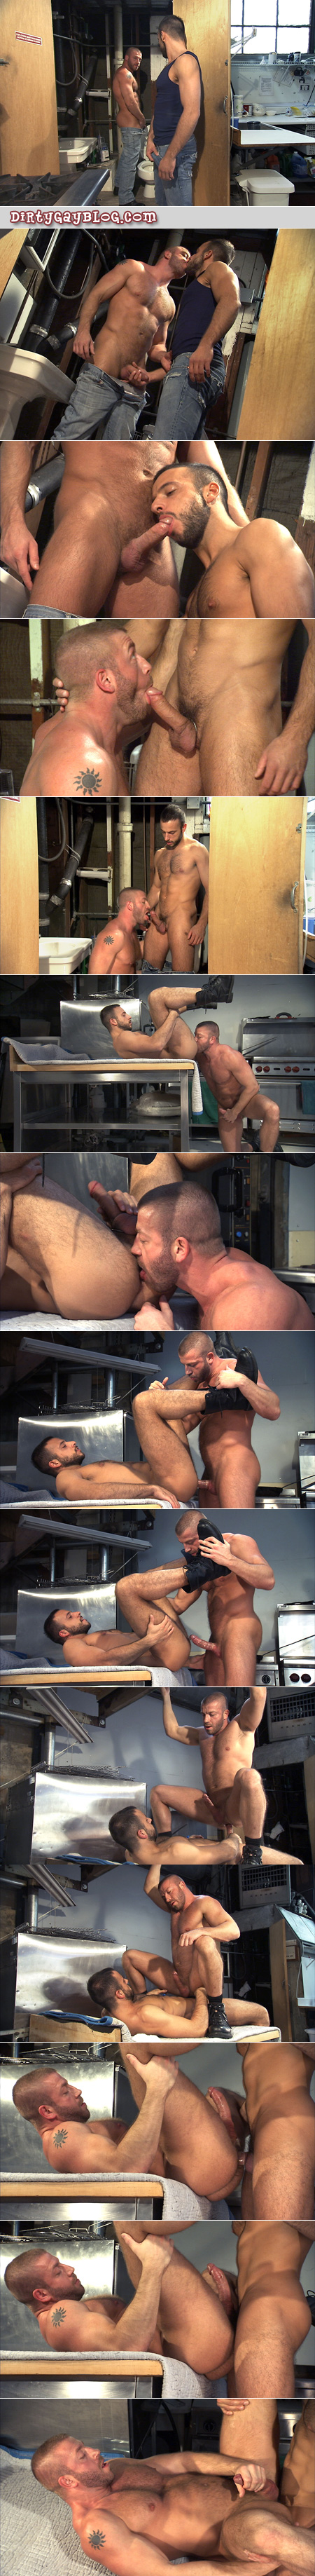 Beefy, hairy muscle bear flip-fucks with a hairy Italian guy on a plumber construction site.